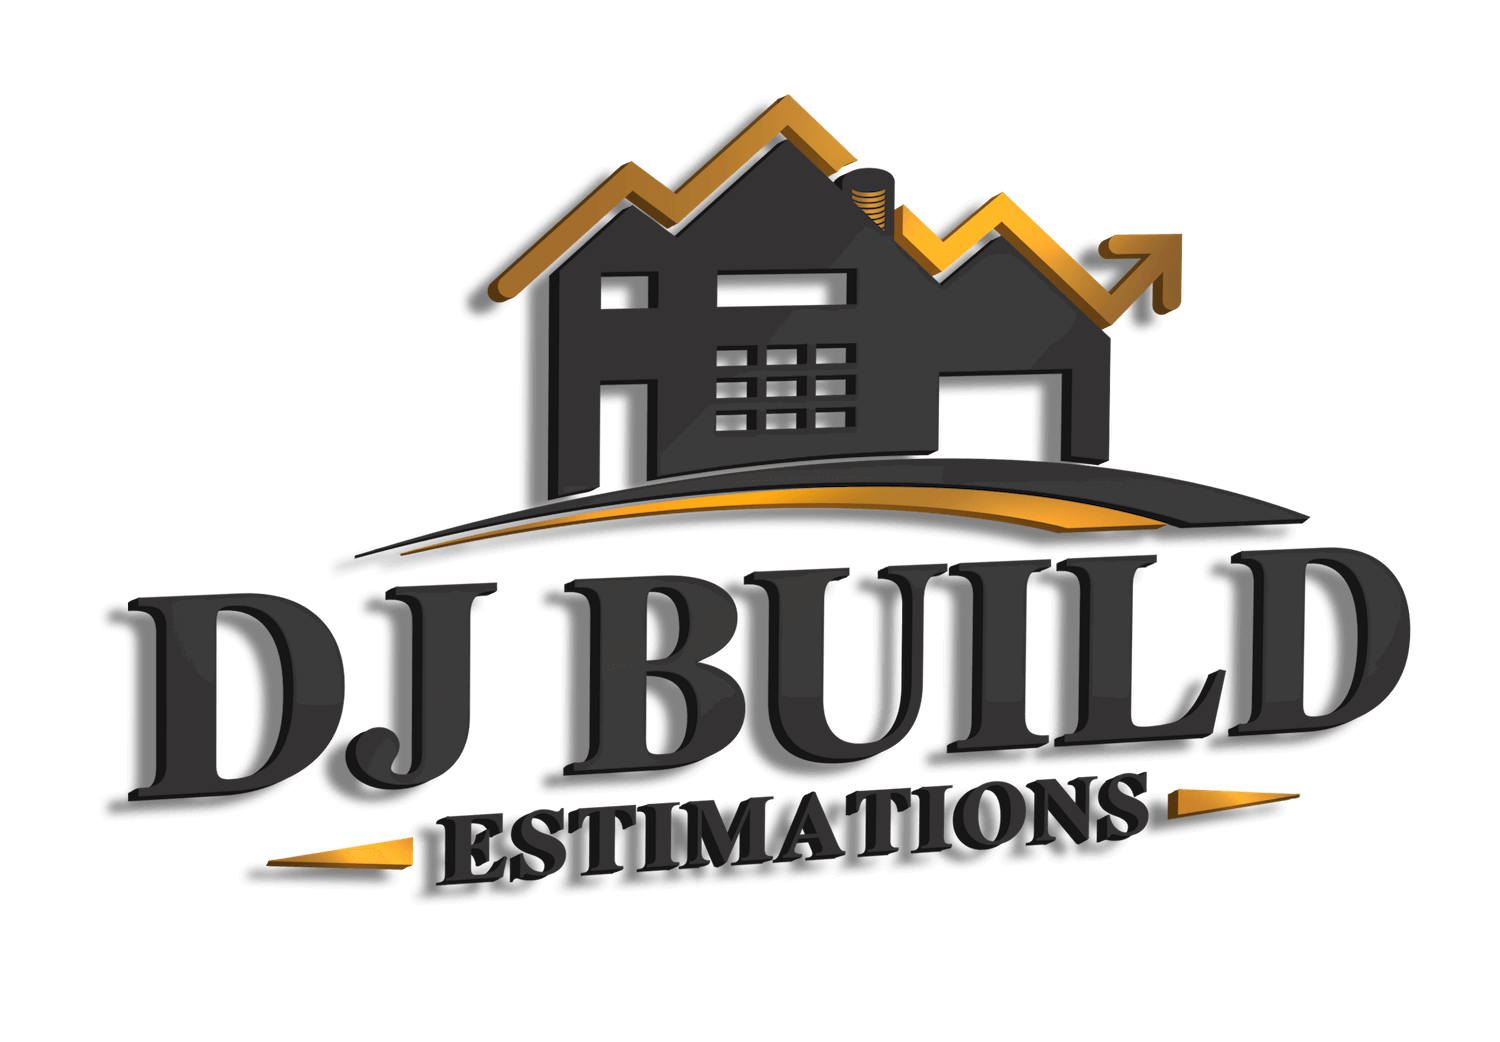 DJ Build Estimations serving Ireland and Northern Ireland